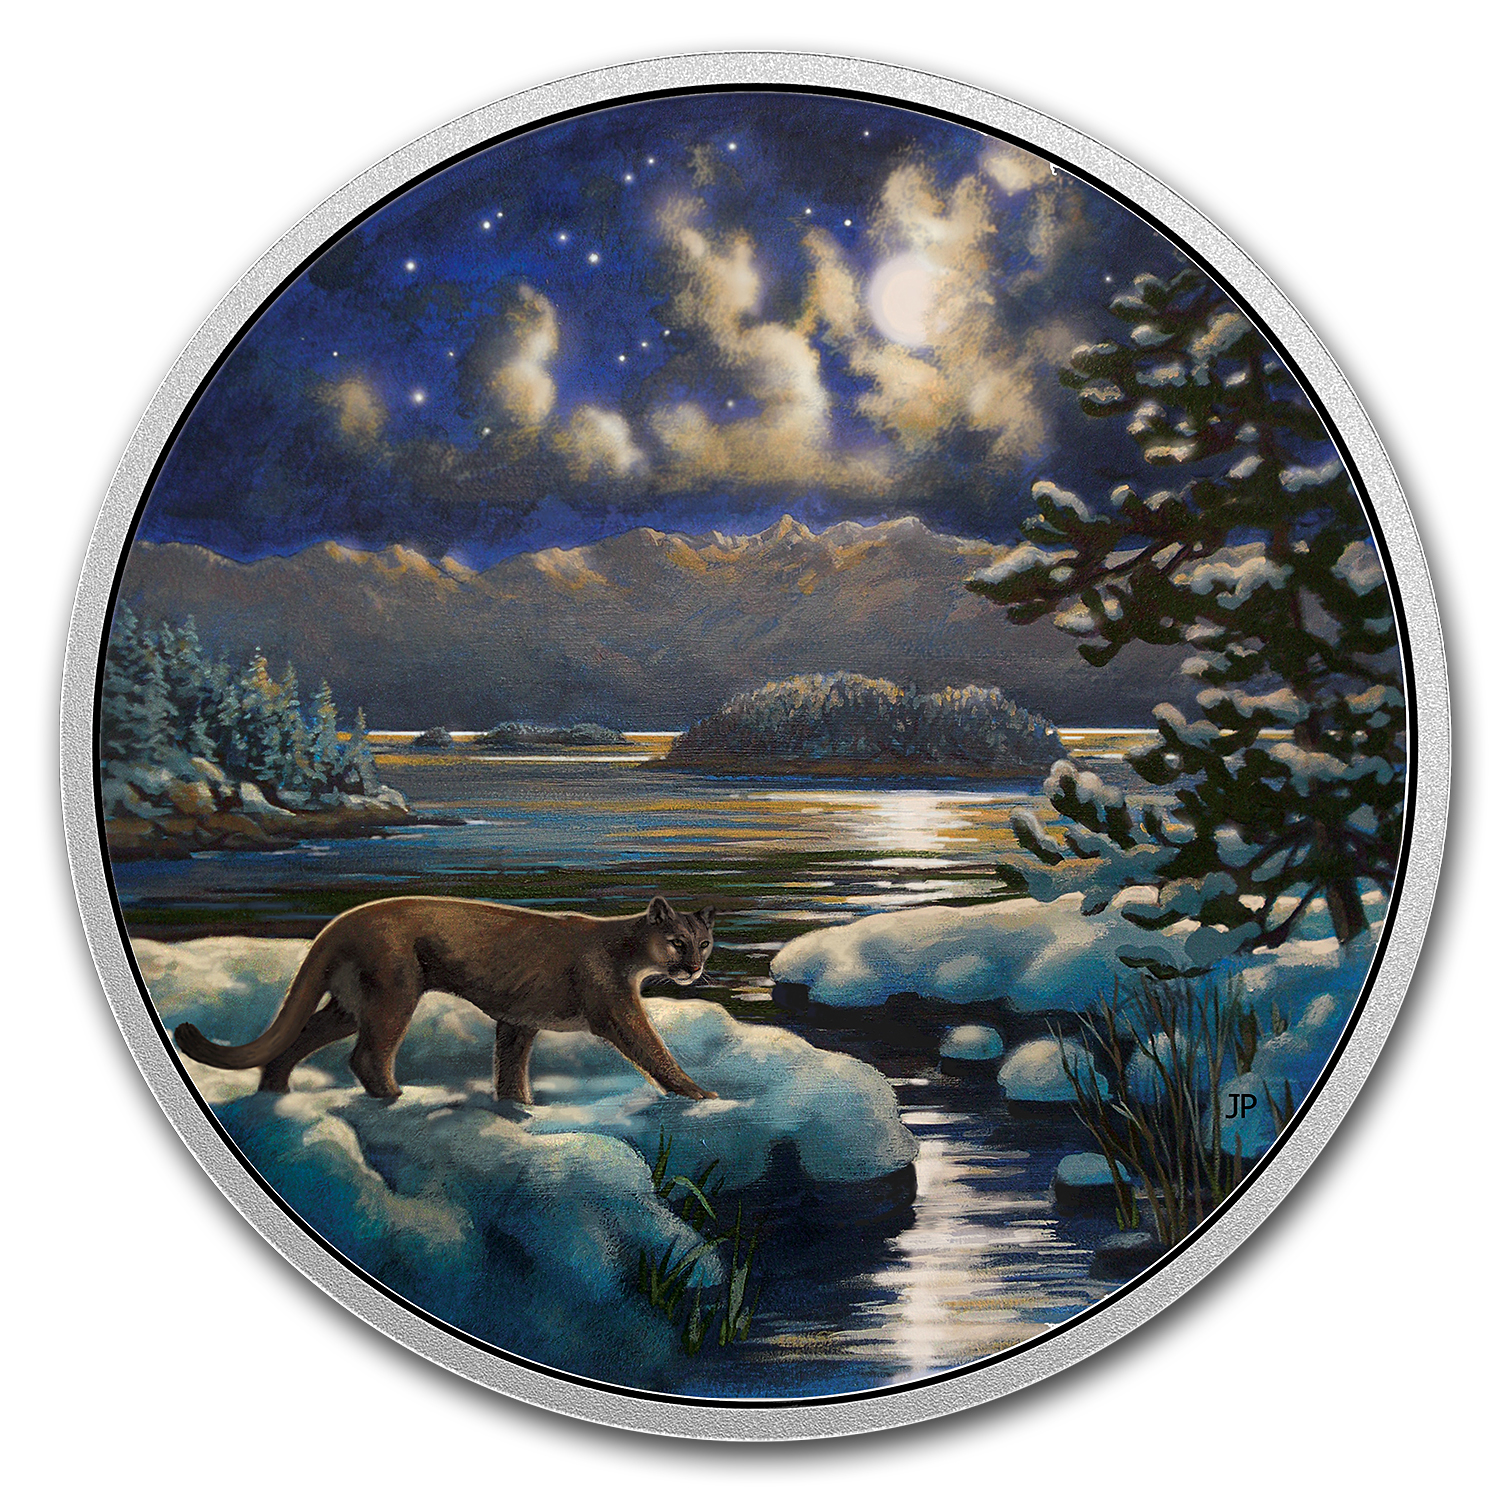 2017 Canada 2 oz Silver $30 Animals in the Moonlight: Cougar